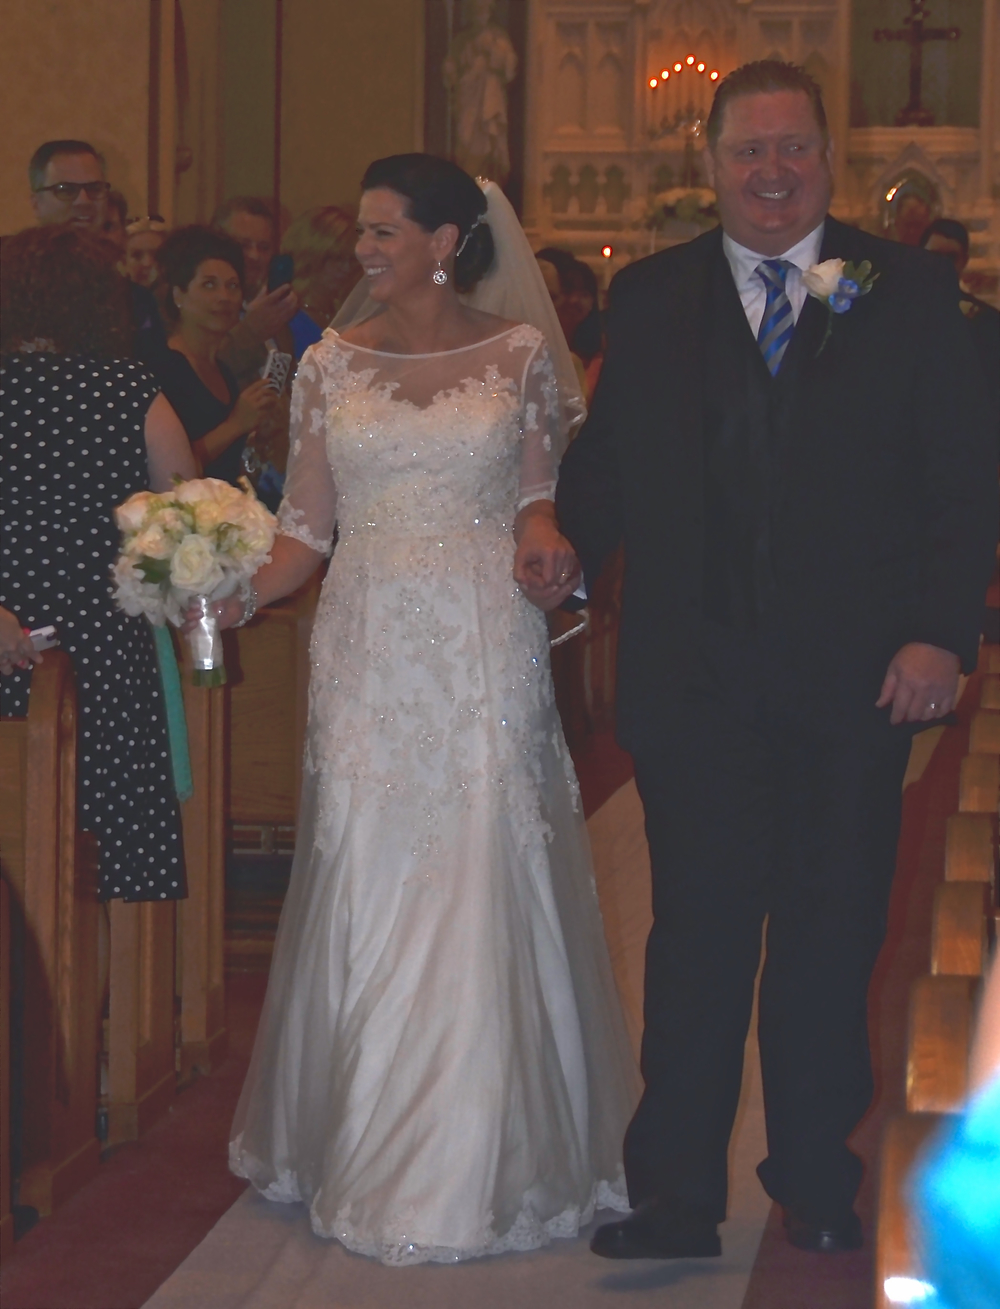 2015 wedding siobhan and eddie.jpg